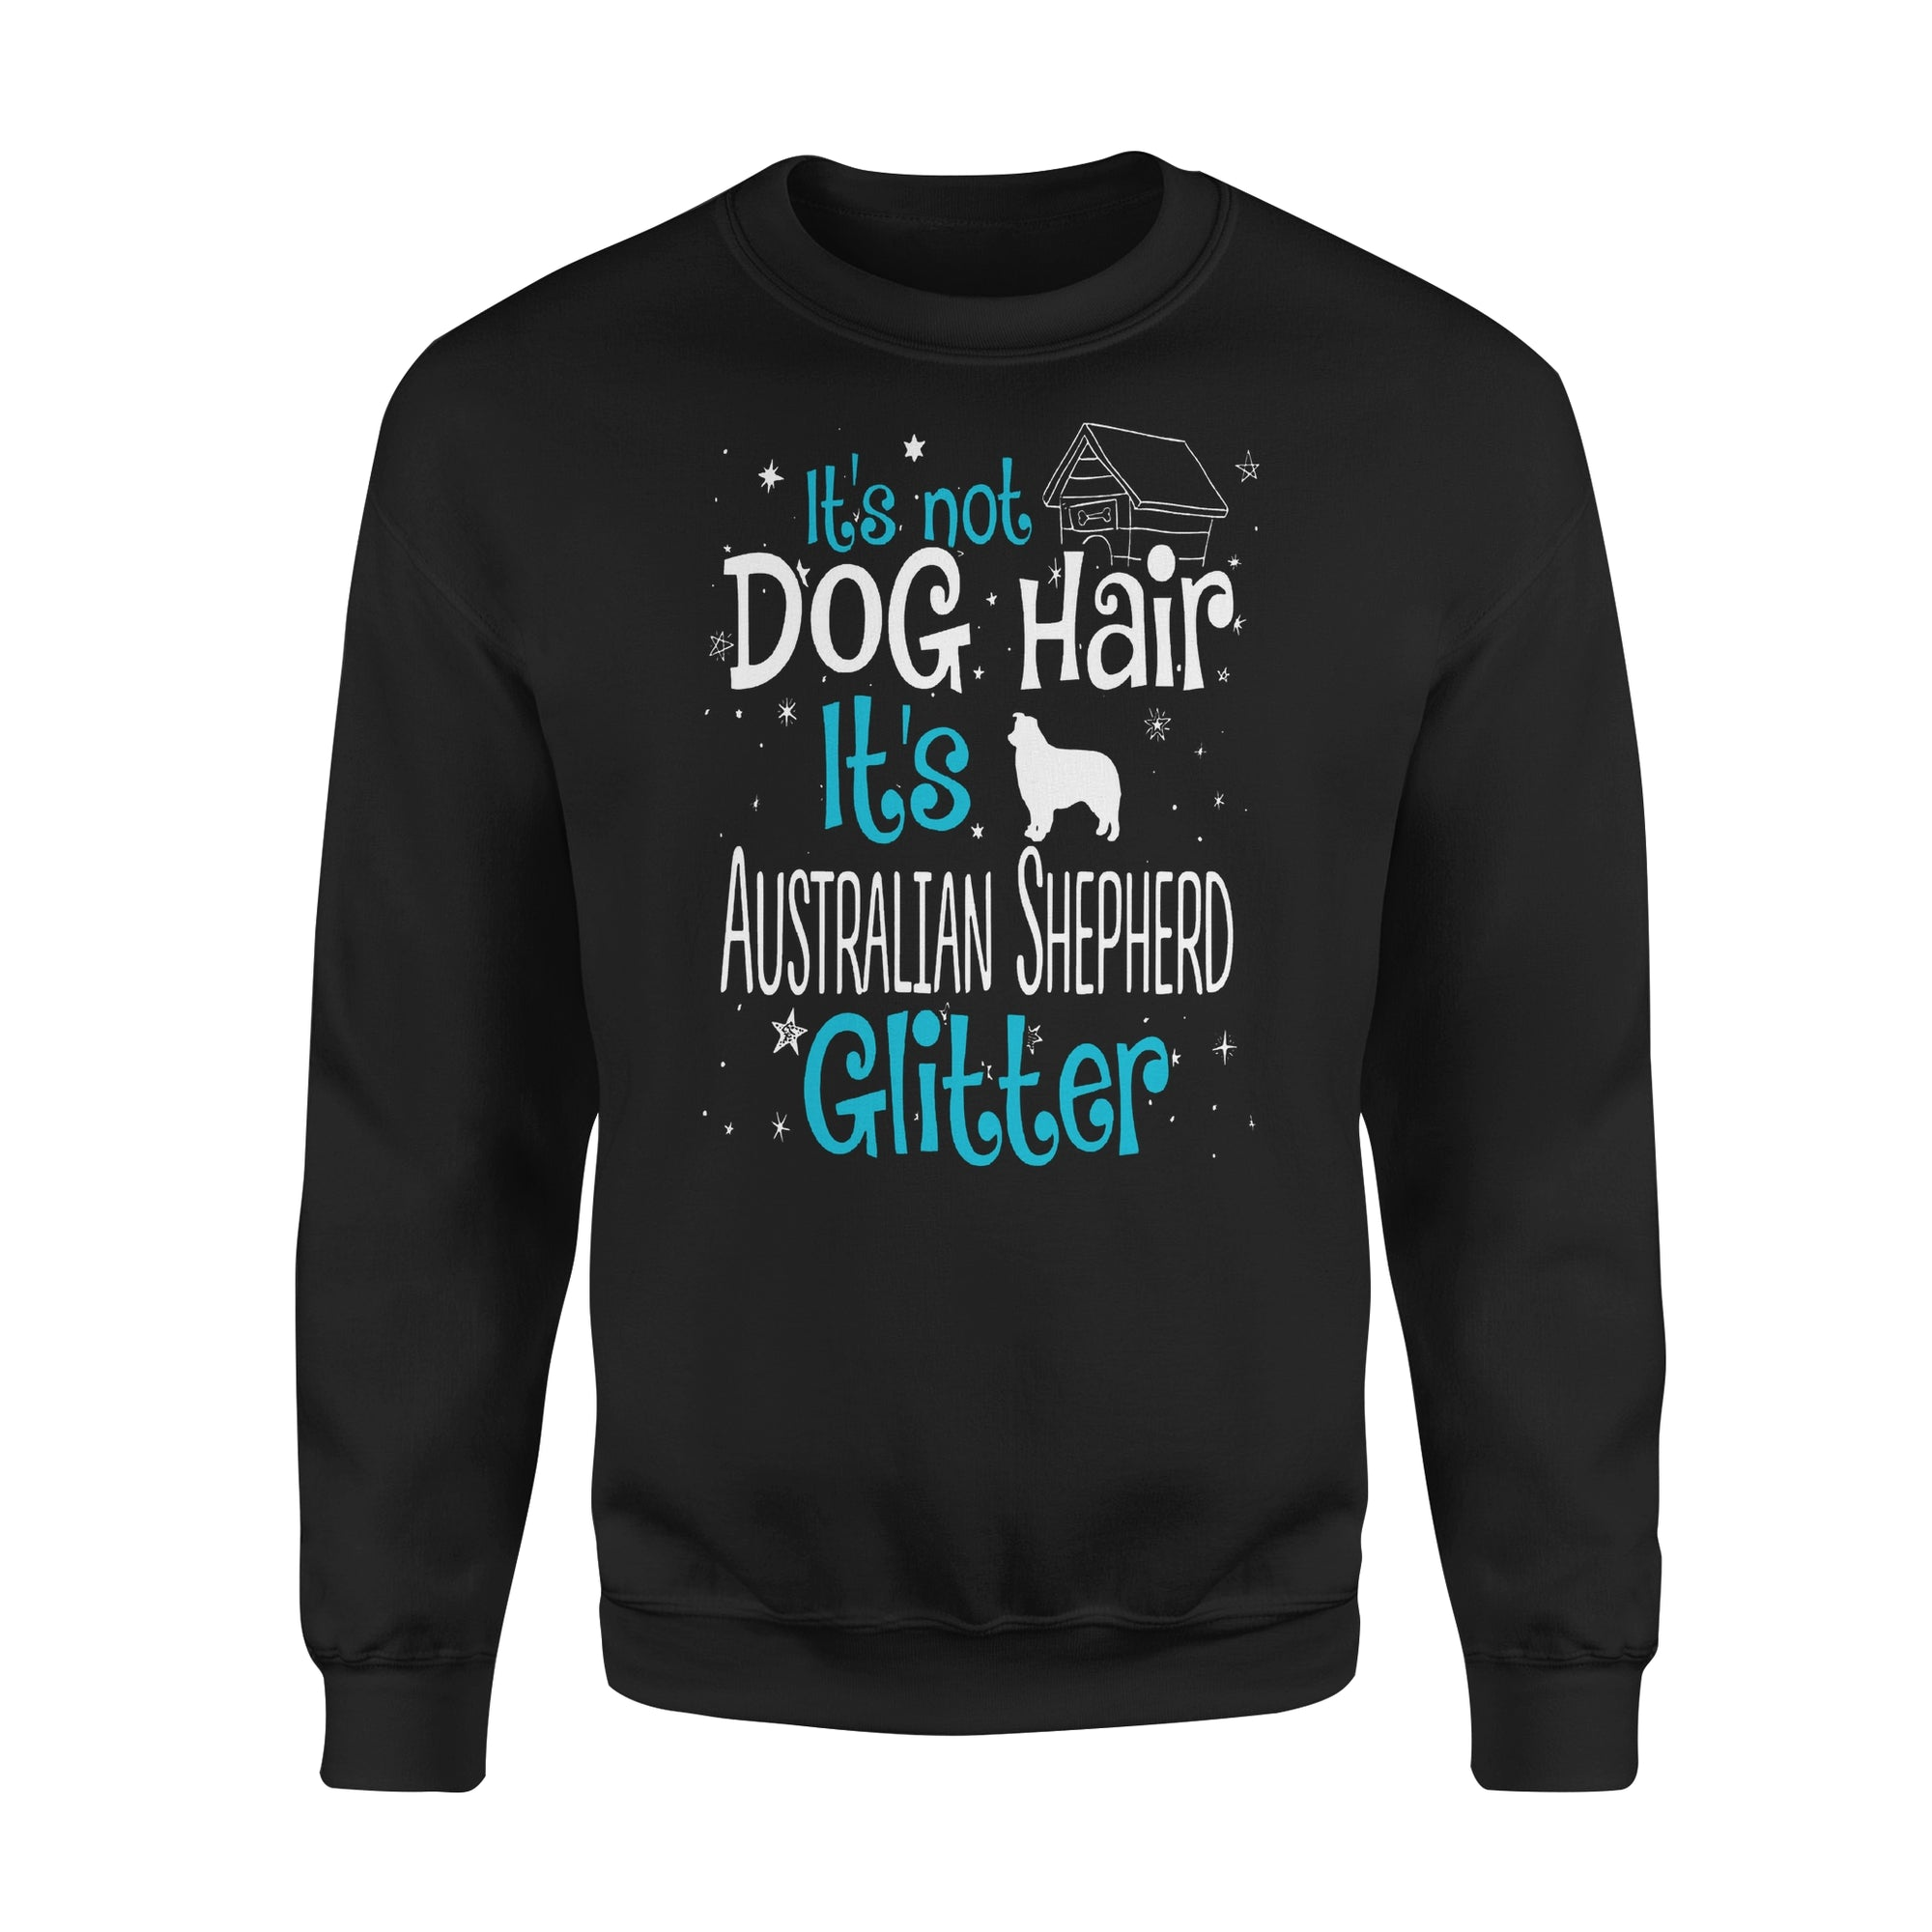 VIRA Premium Fleece Sweatshirt For Australian Shepherd Lovers